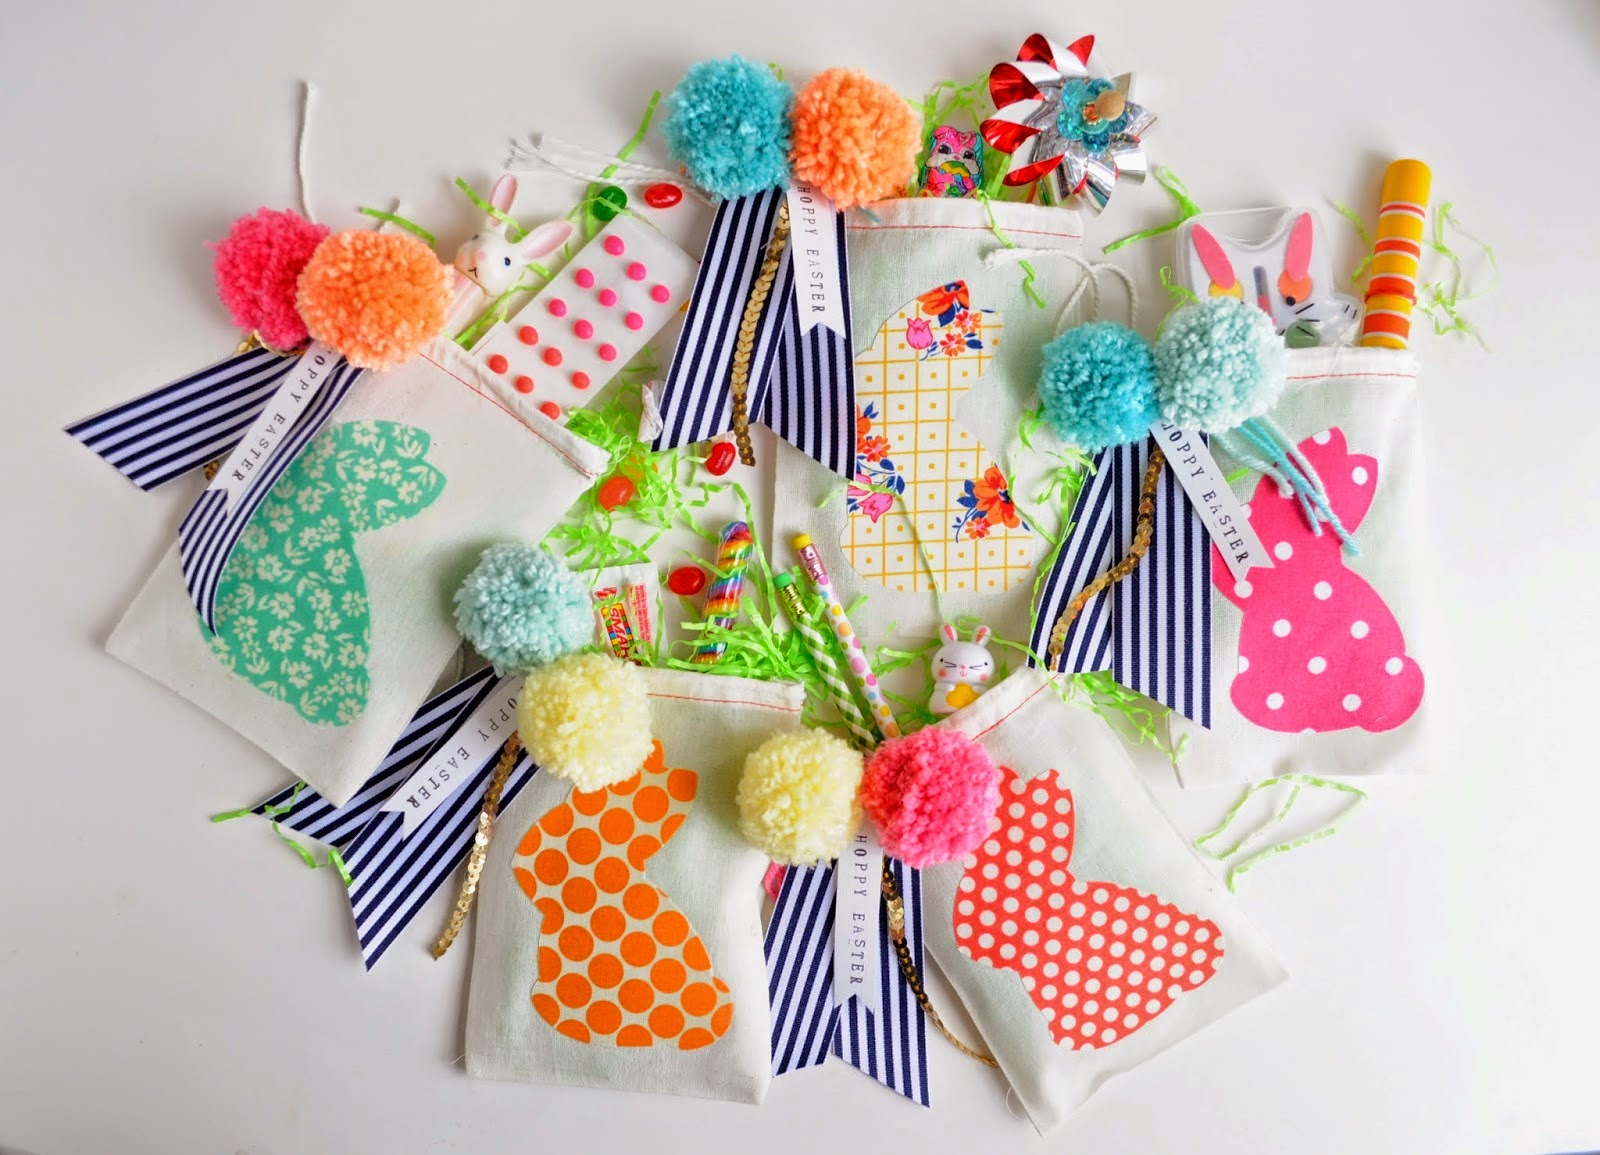 http://www.aprettycoollife.com/2014/04/diy-easter-party-favor-bags.html